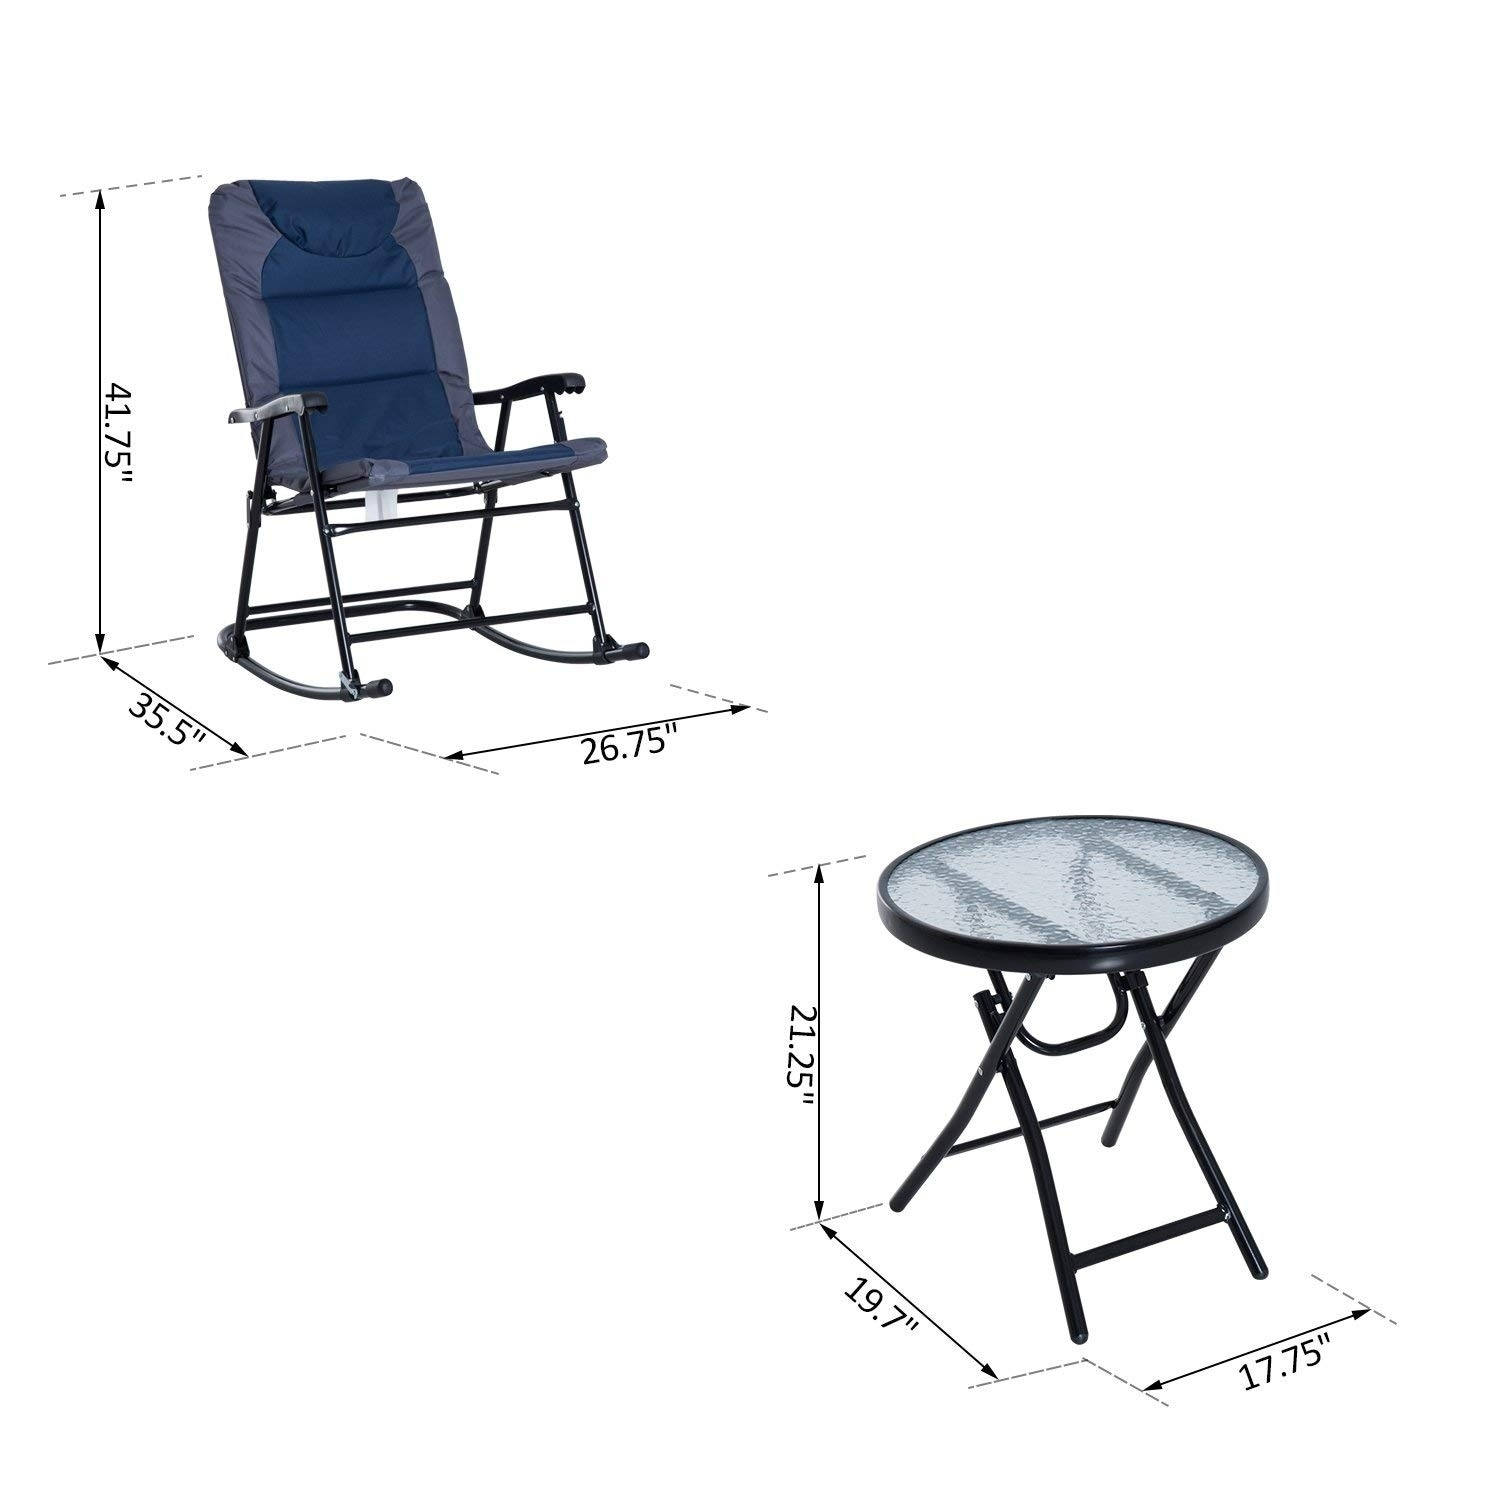 Outdoor Rocking Chair Set Outsunny 3 Piece Folding Outdoor Rocking Chair And Table Set Blue And Grey